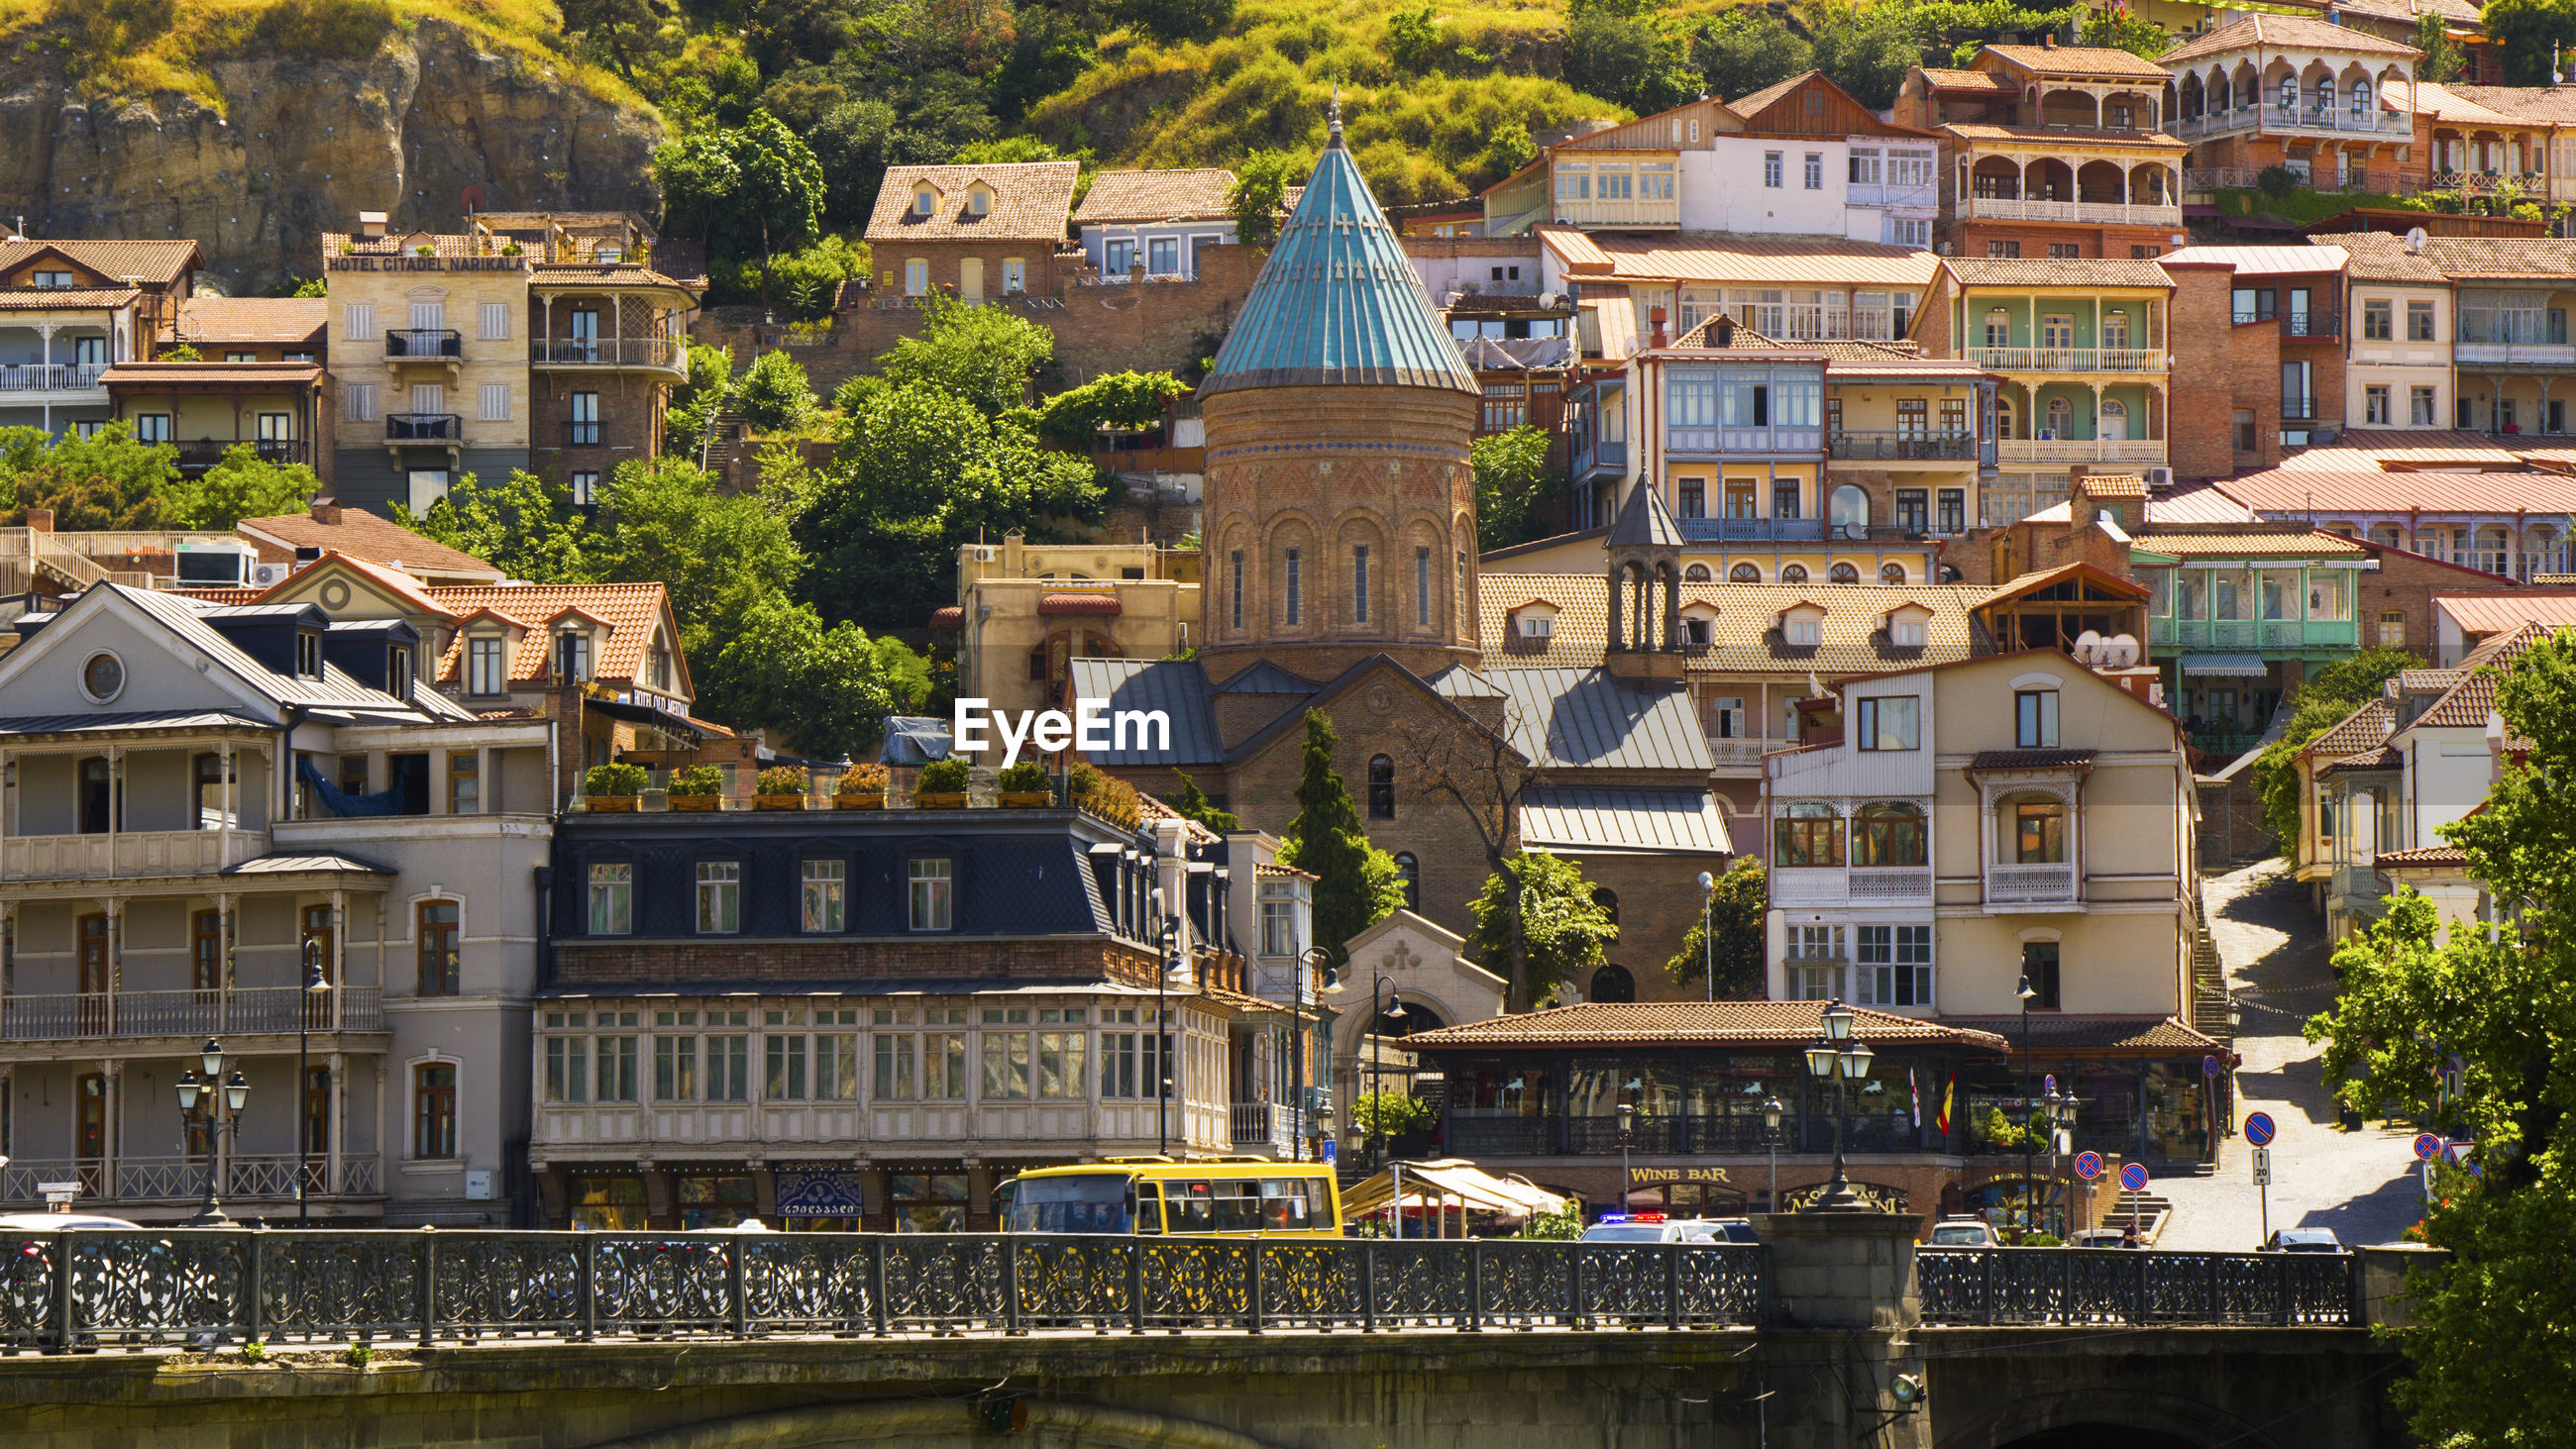 Old town and city center of tbilisi, georgia. famous places and landmarks, hill of narikhala.